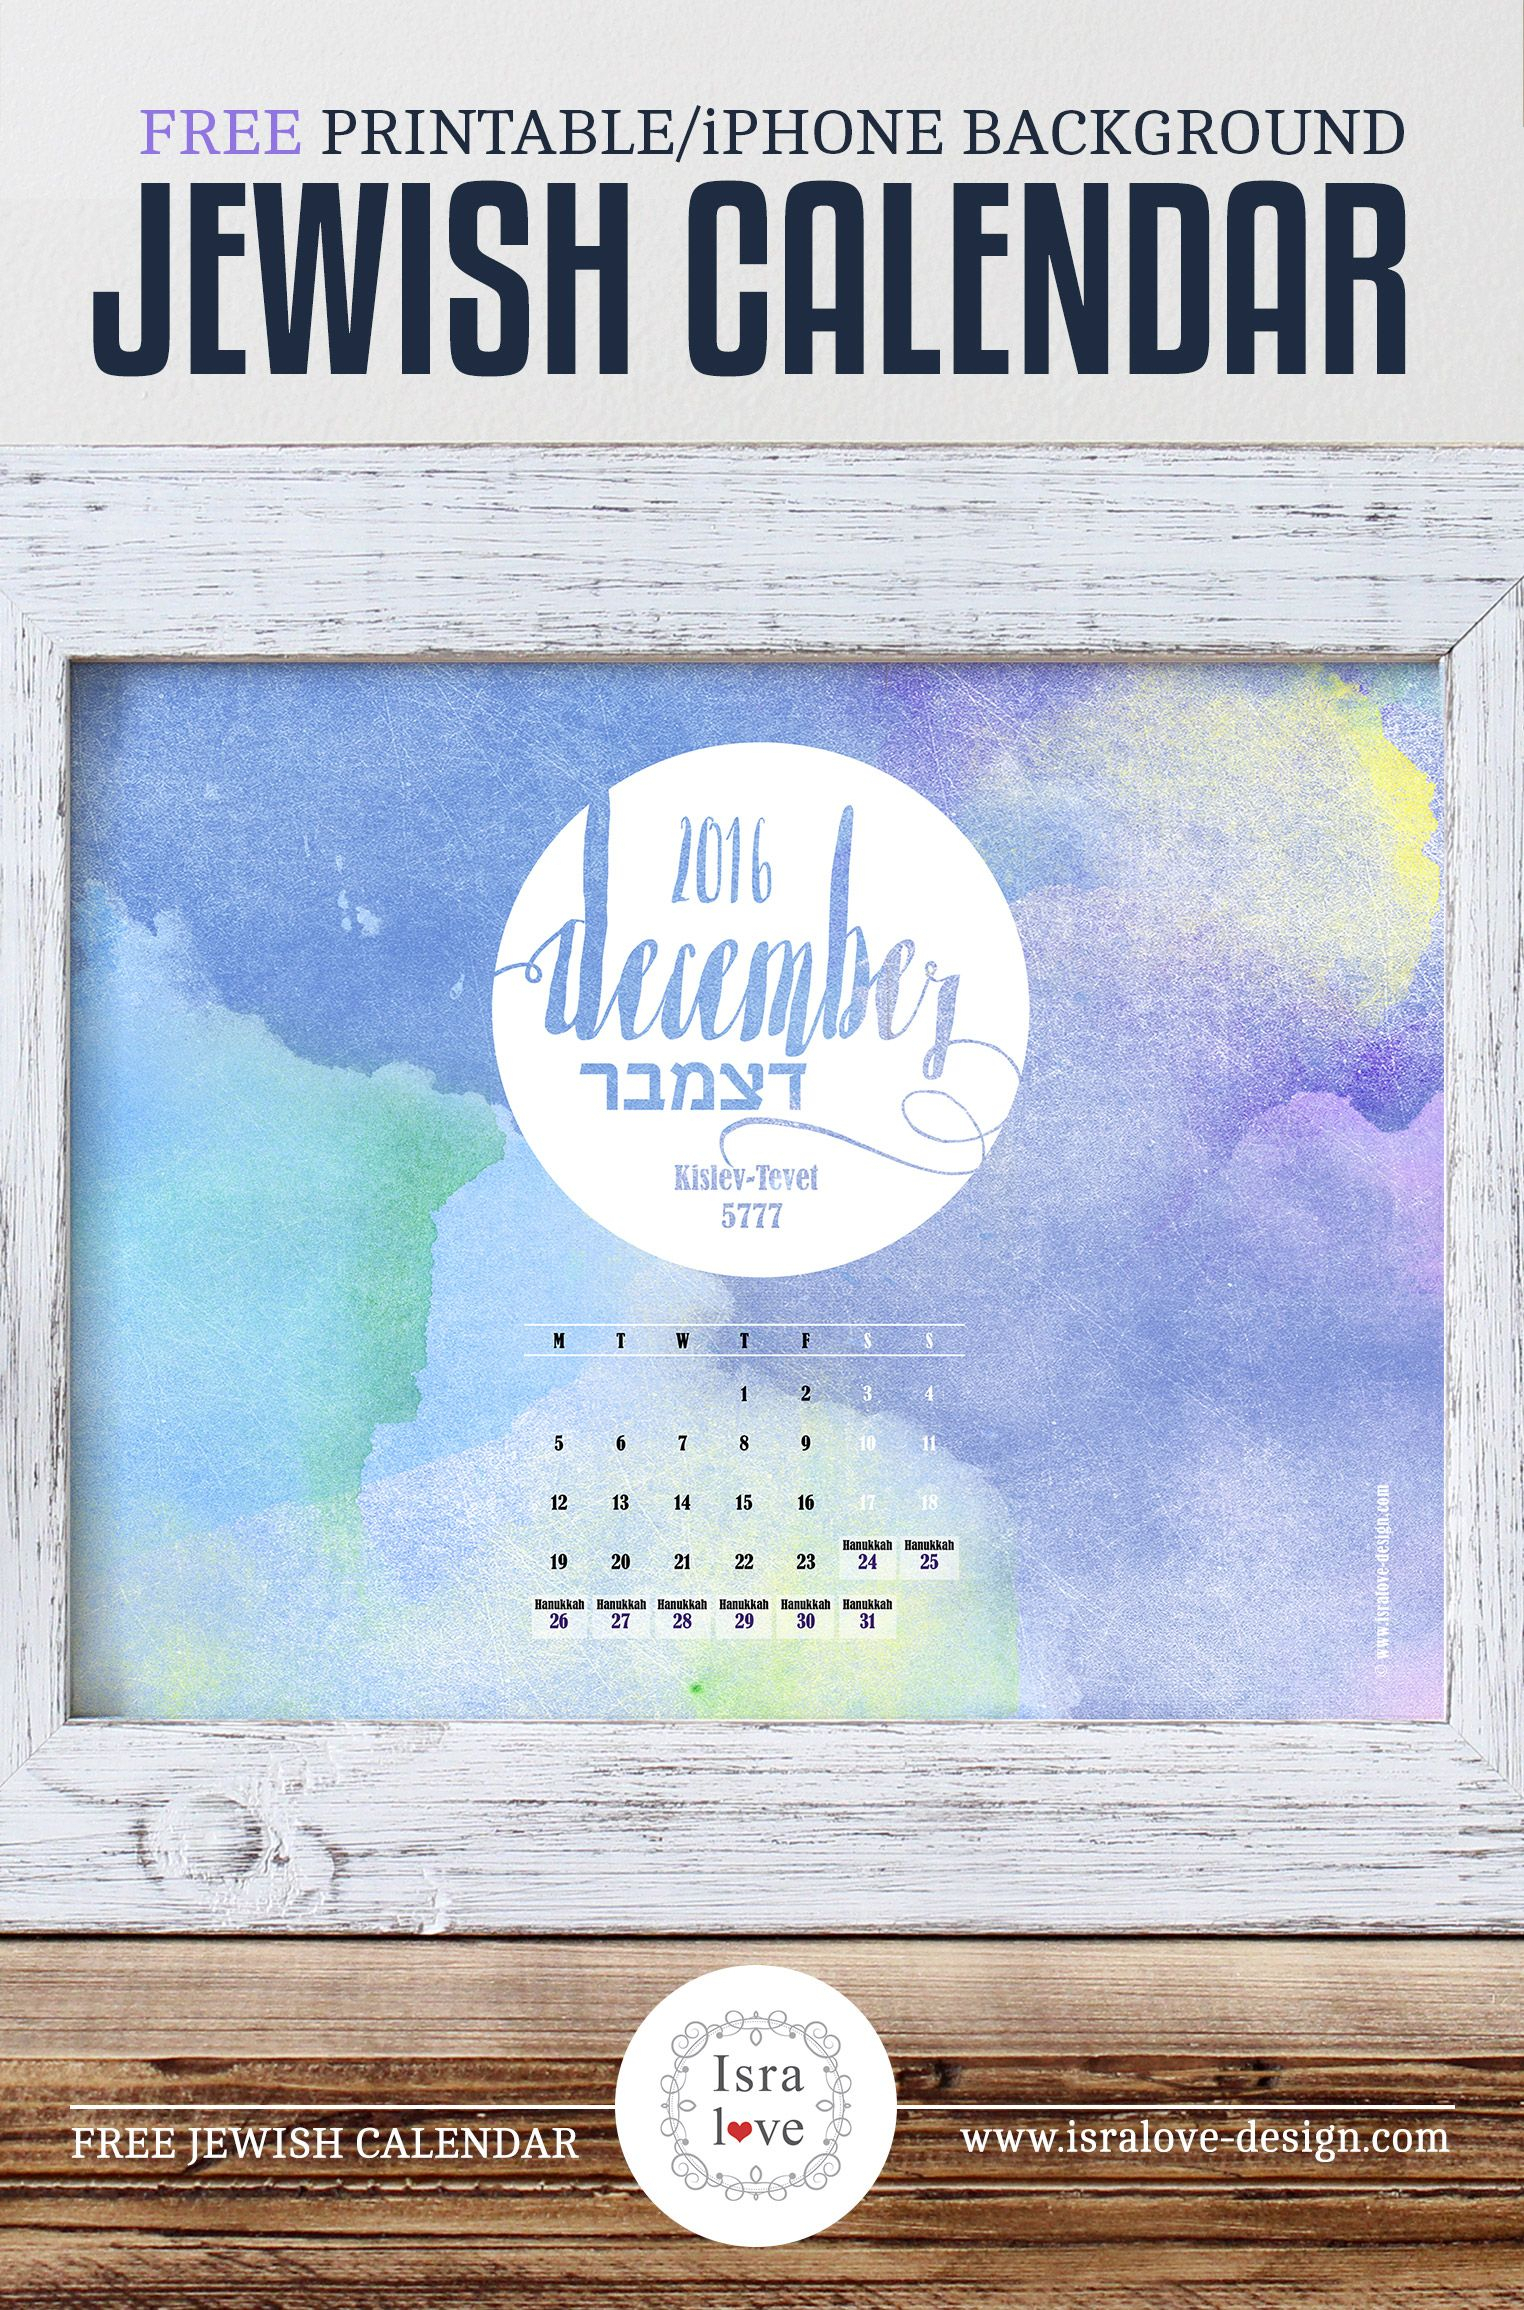 Jewish Calendar, Free Download, Chanukah / Kislev - Tevet